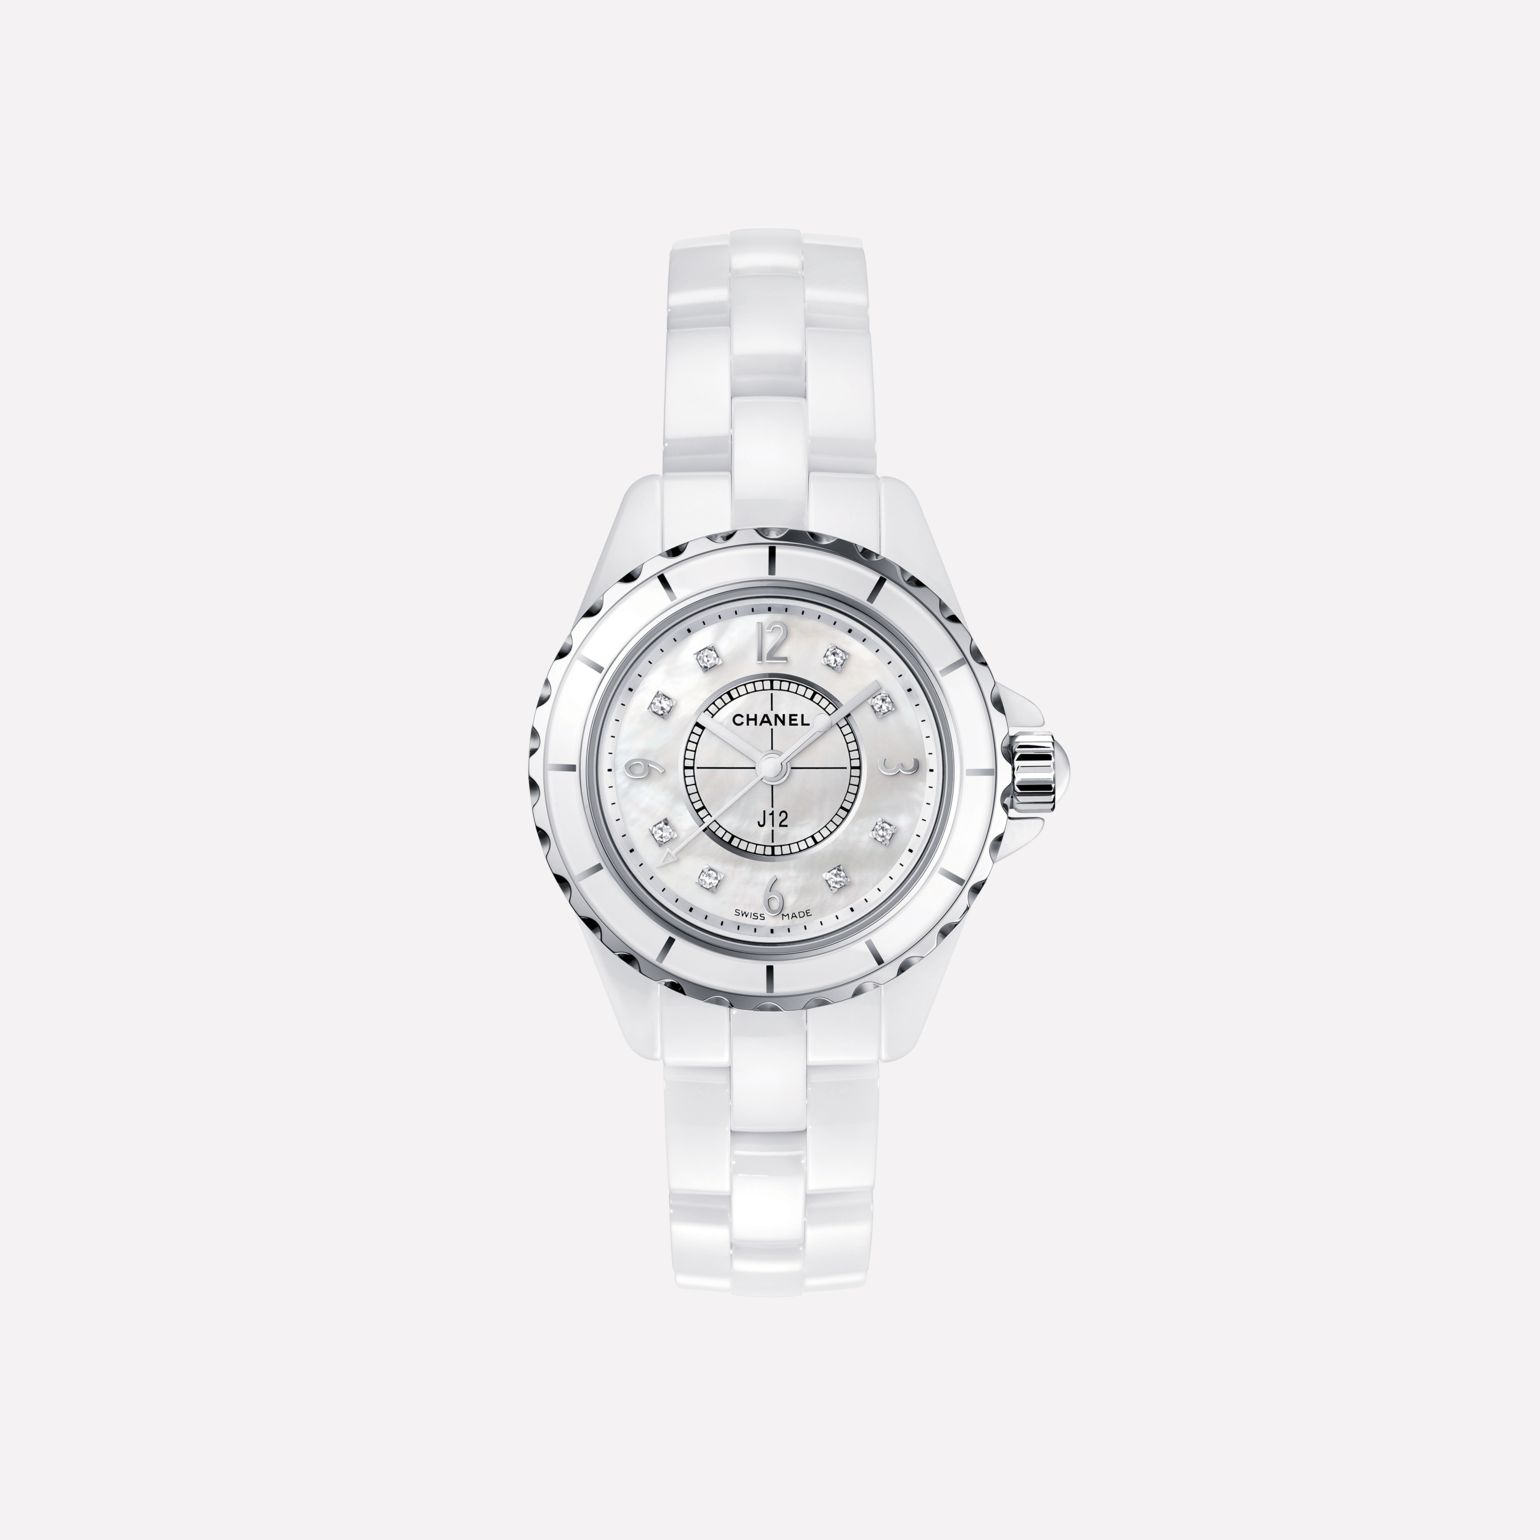 J12 Watch White highly-resistant ceramic and steel, diamond indicators, white mother-of-pearl dial